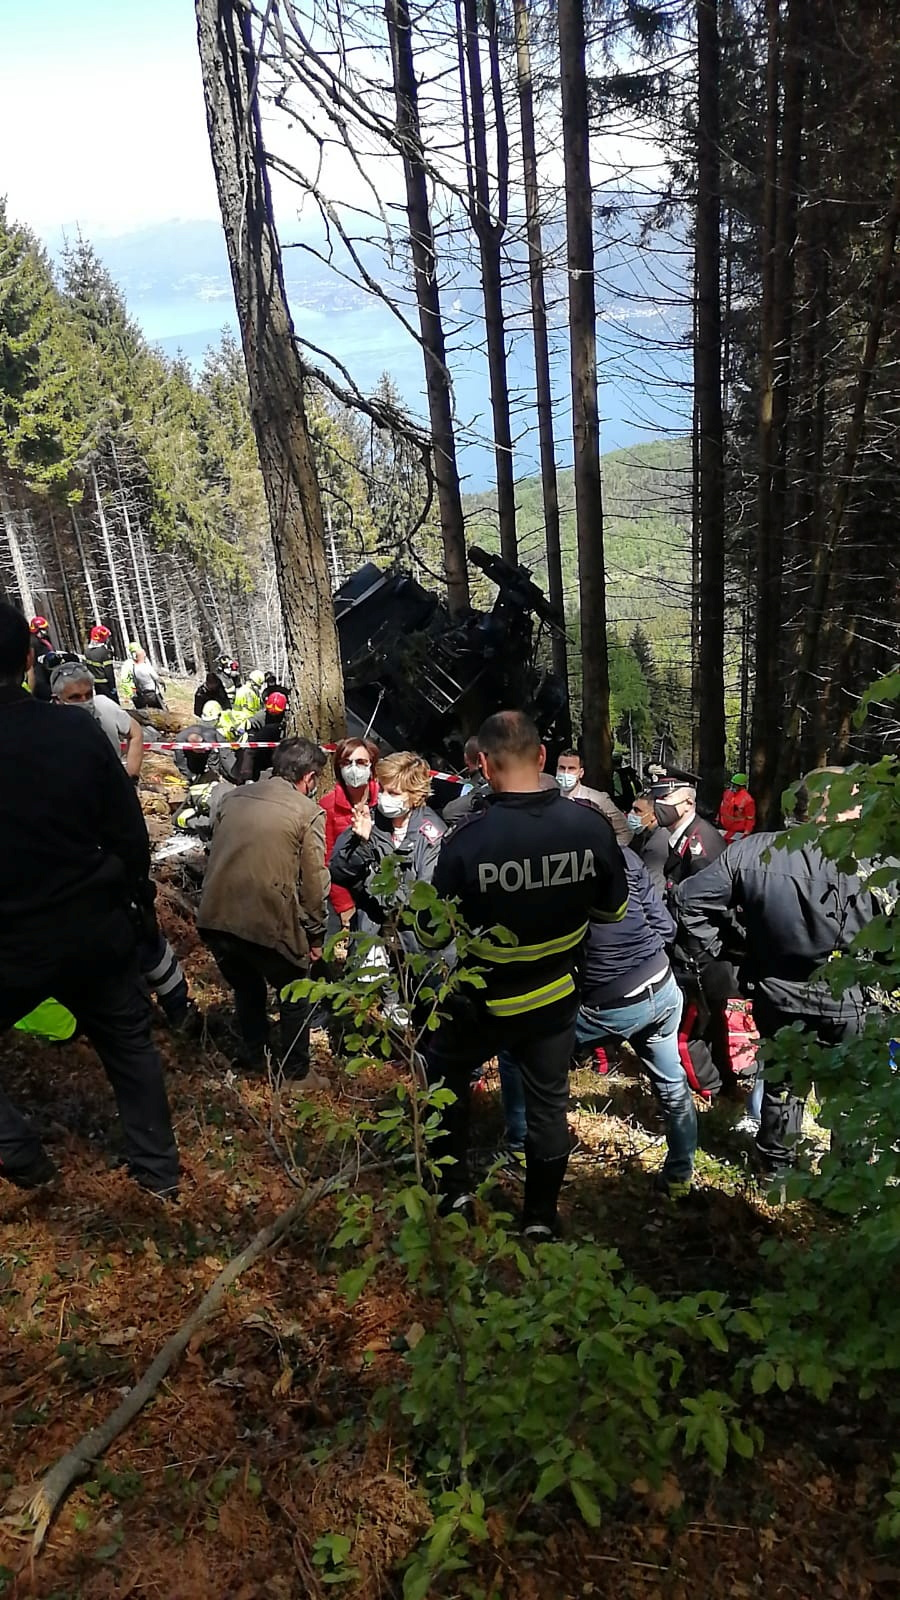 Police and rescue service members are seen near the crashed cable car after it collapsed in Stresa, near Lake Maggiore, Italy May 23, 2021. ITALIAN POLICE/Handout via REUTERS